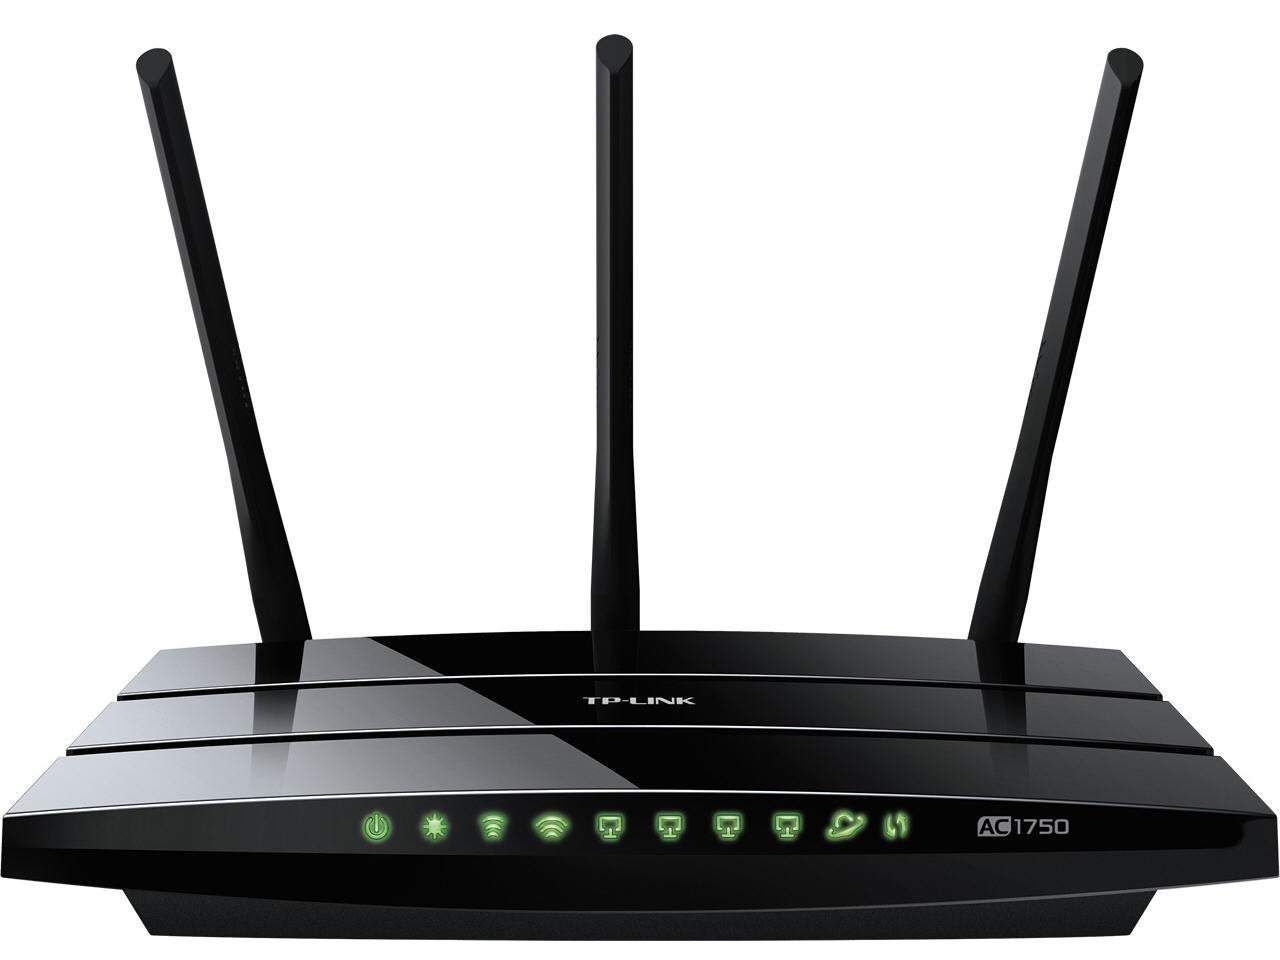 This Guide Presents The Best Gaming Routers 2017 Including Wifi Asus Rt Ac3200 Tri Band Gigabit Router Wireless Ac 3200 Mbps